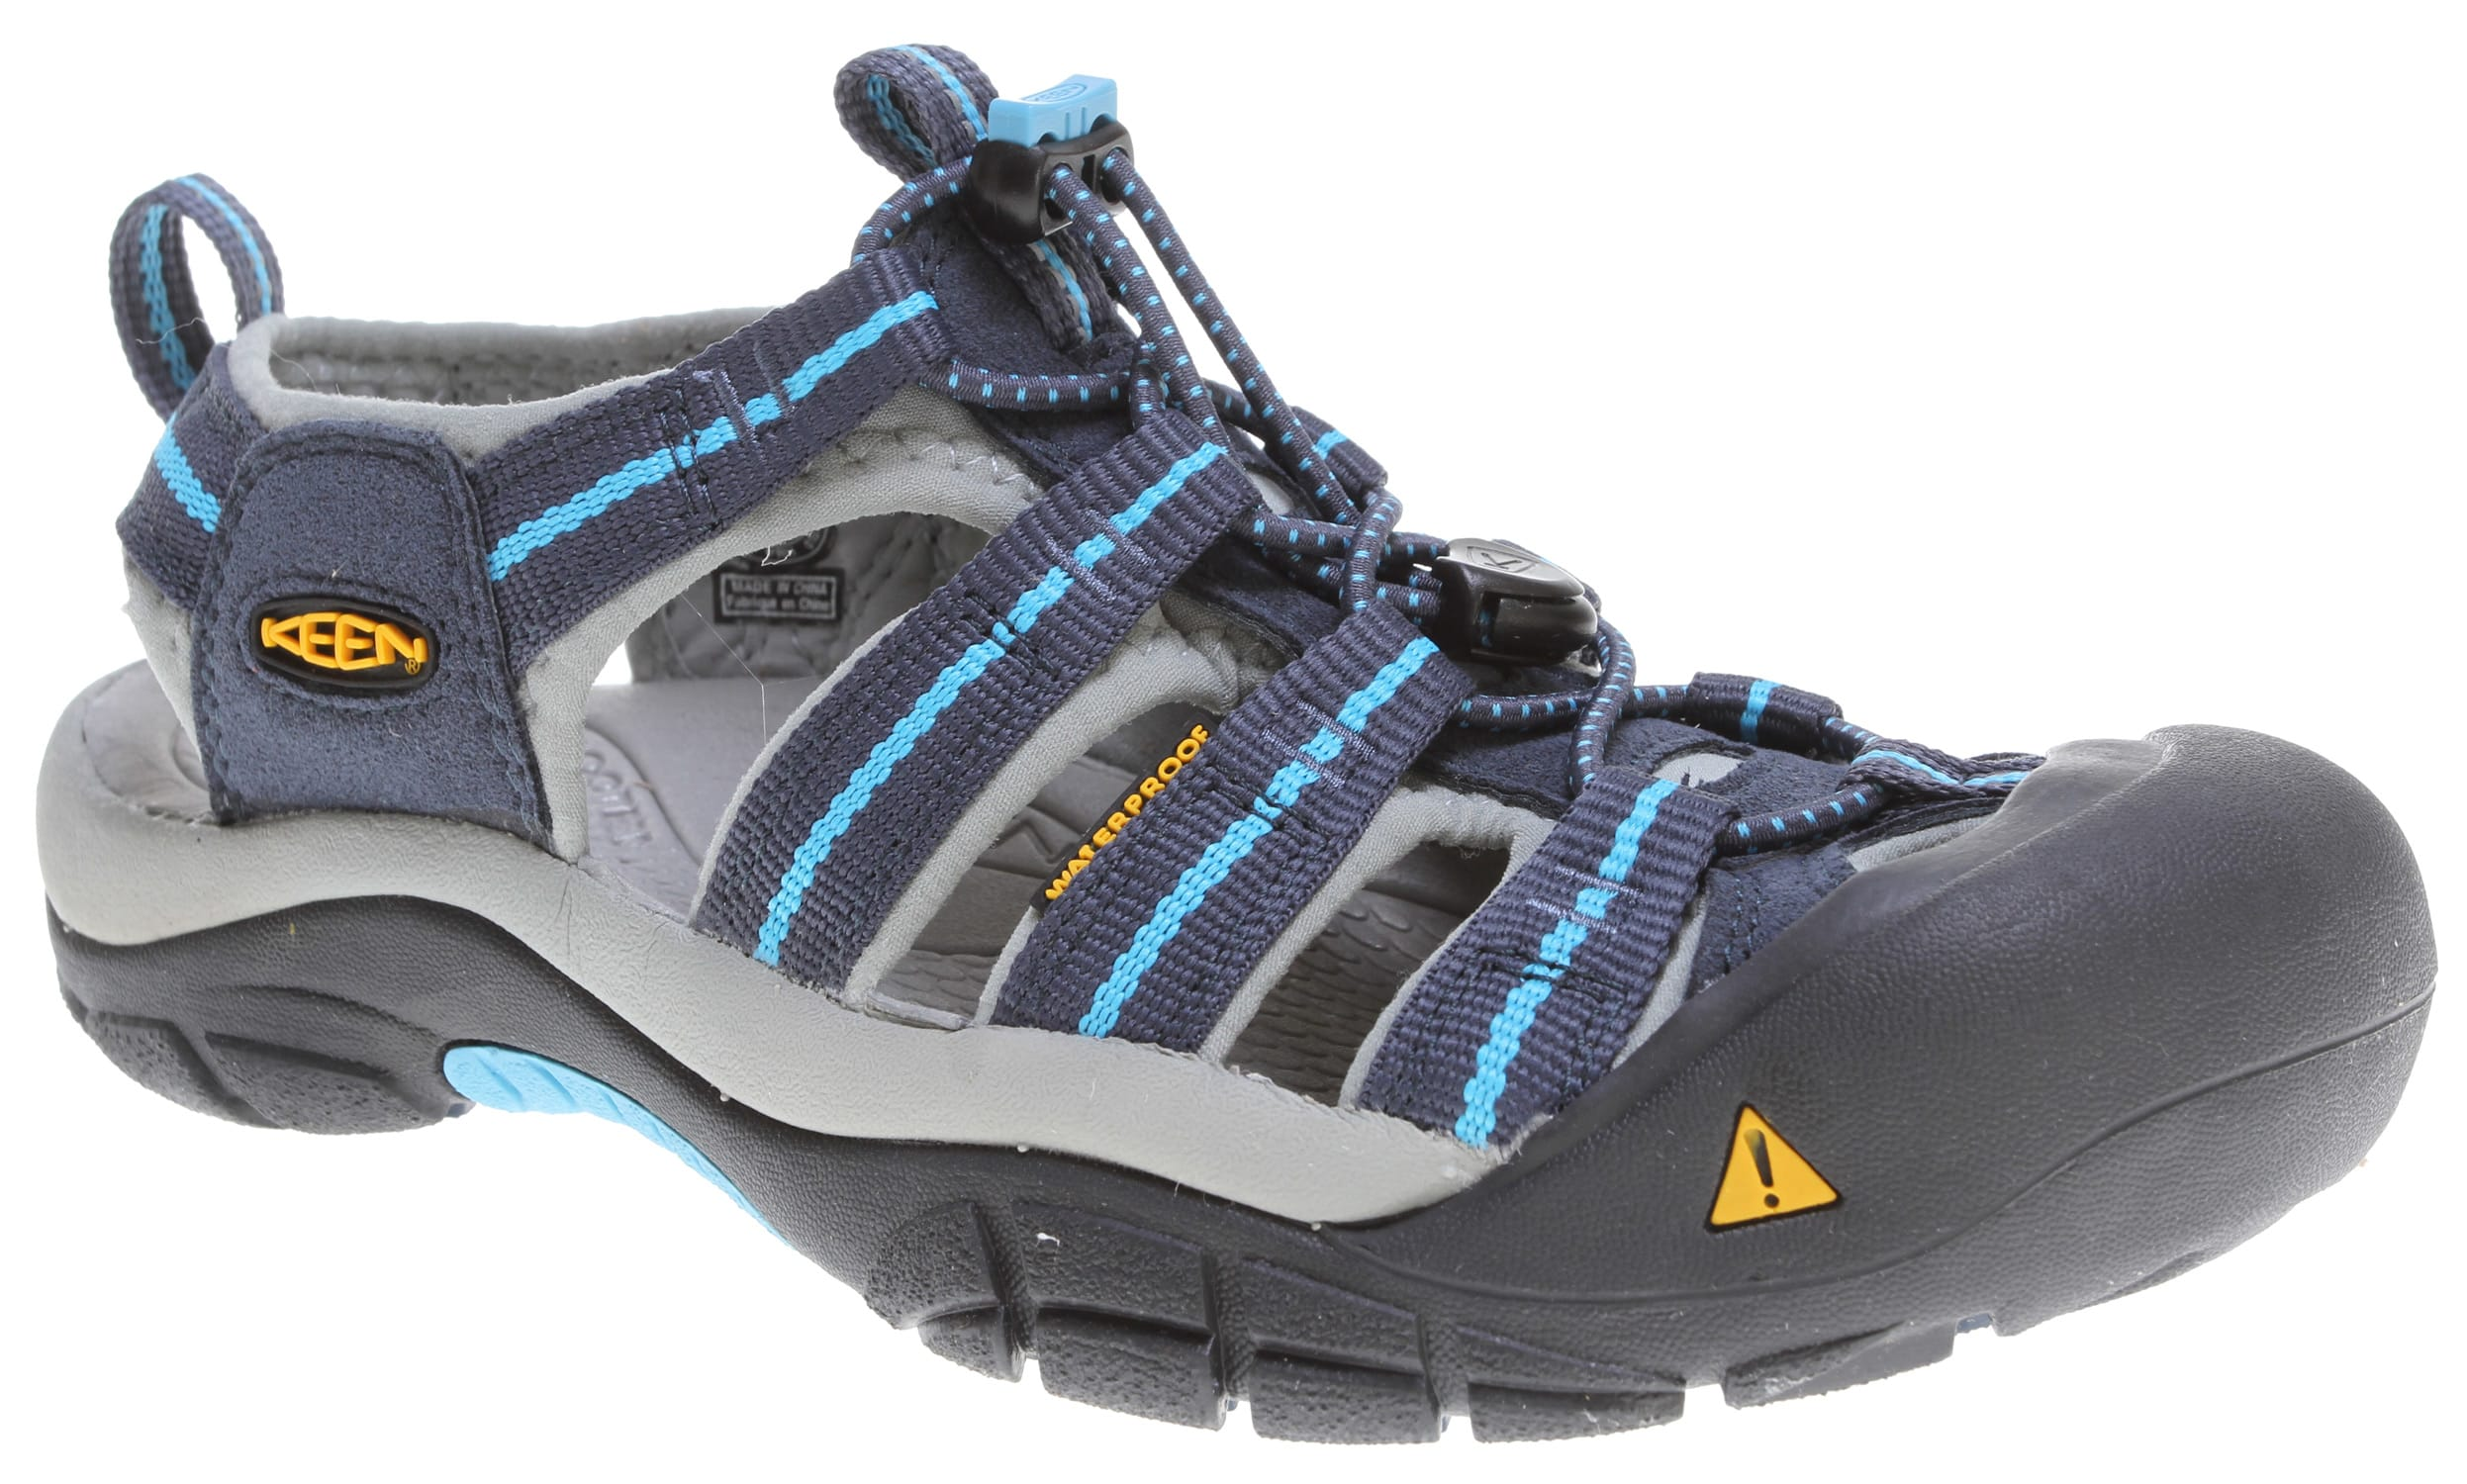 On Sale Keen Newport H2 Sandals Womens Up To 55 Off